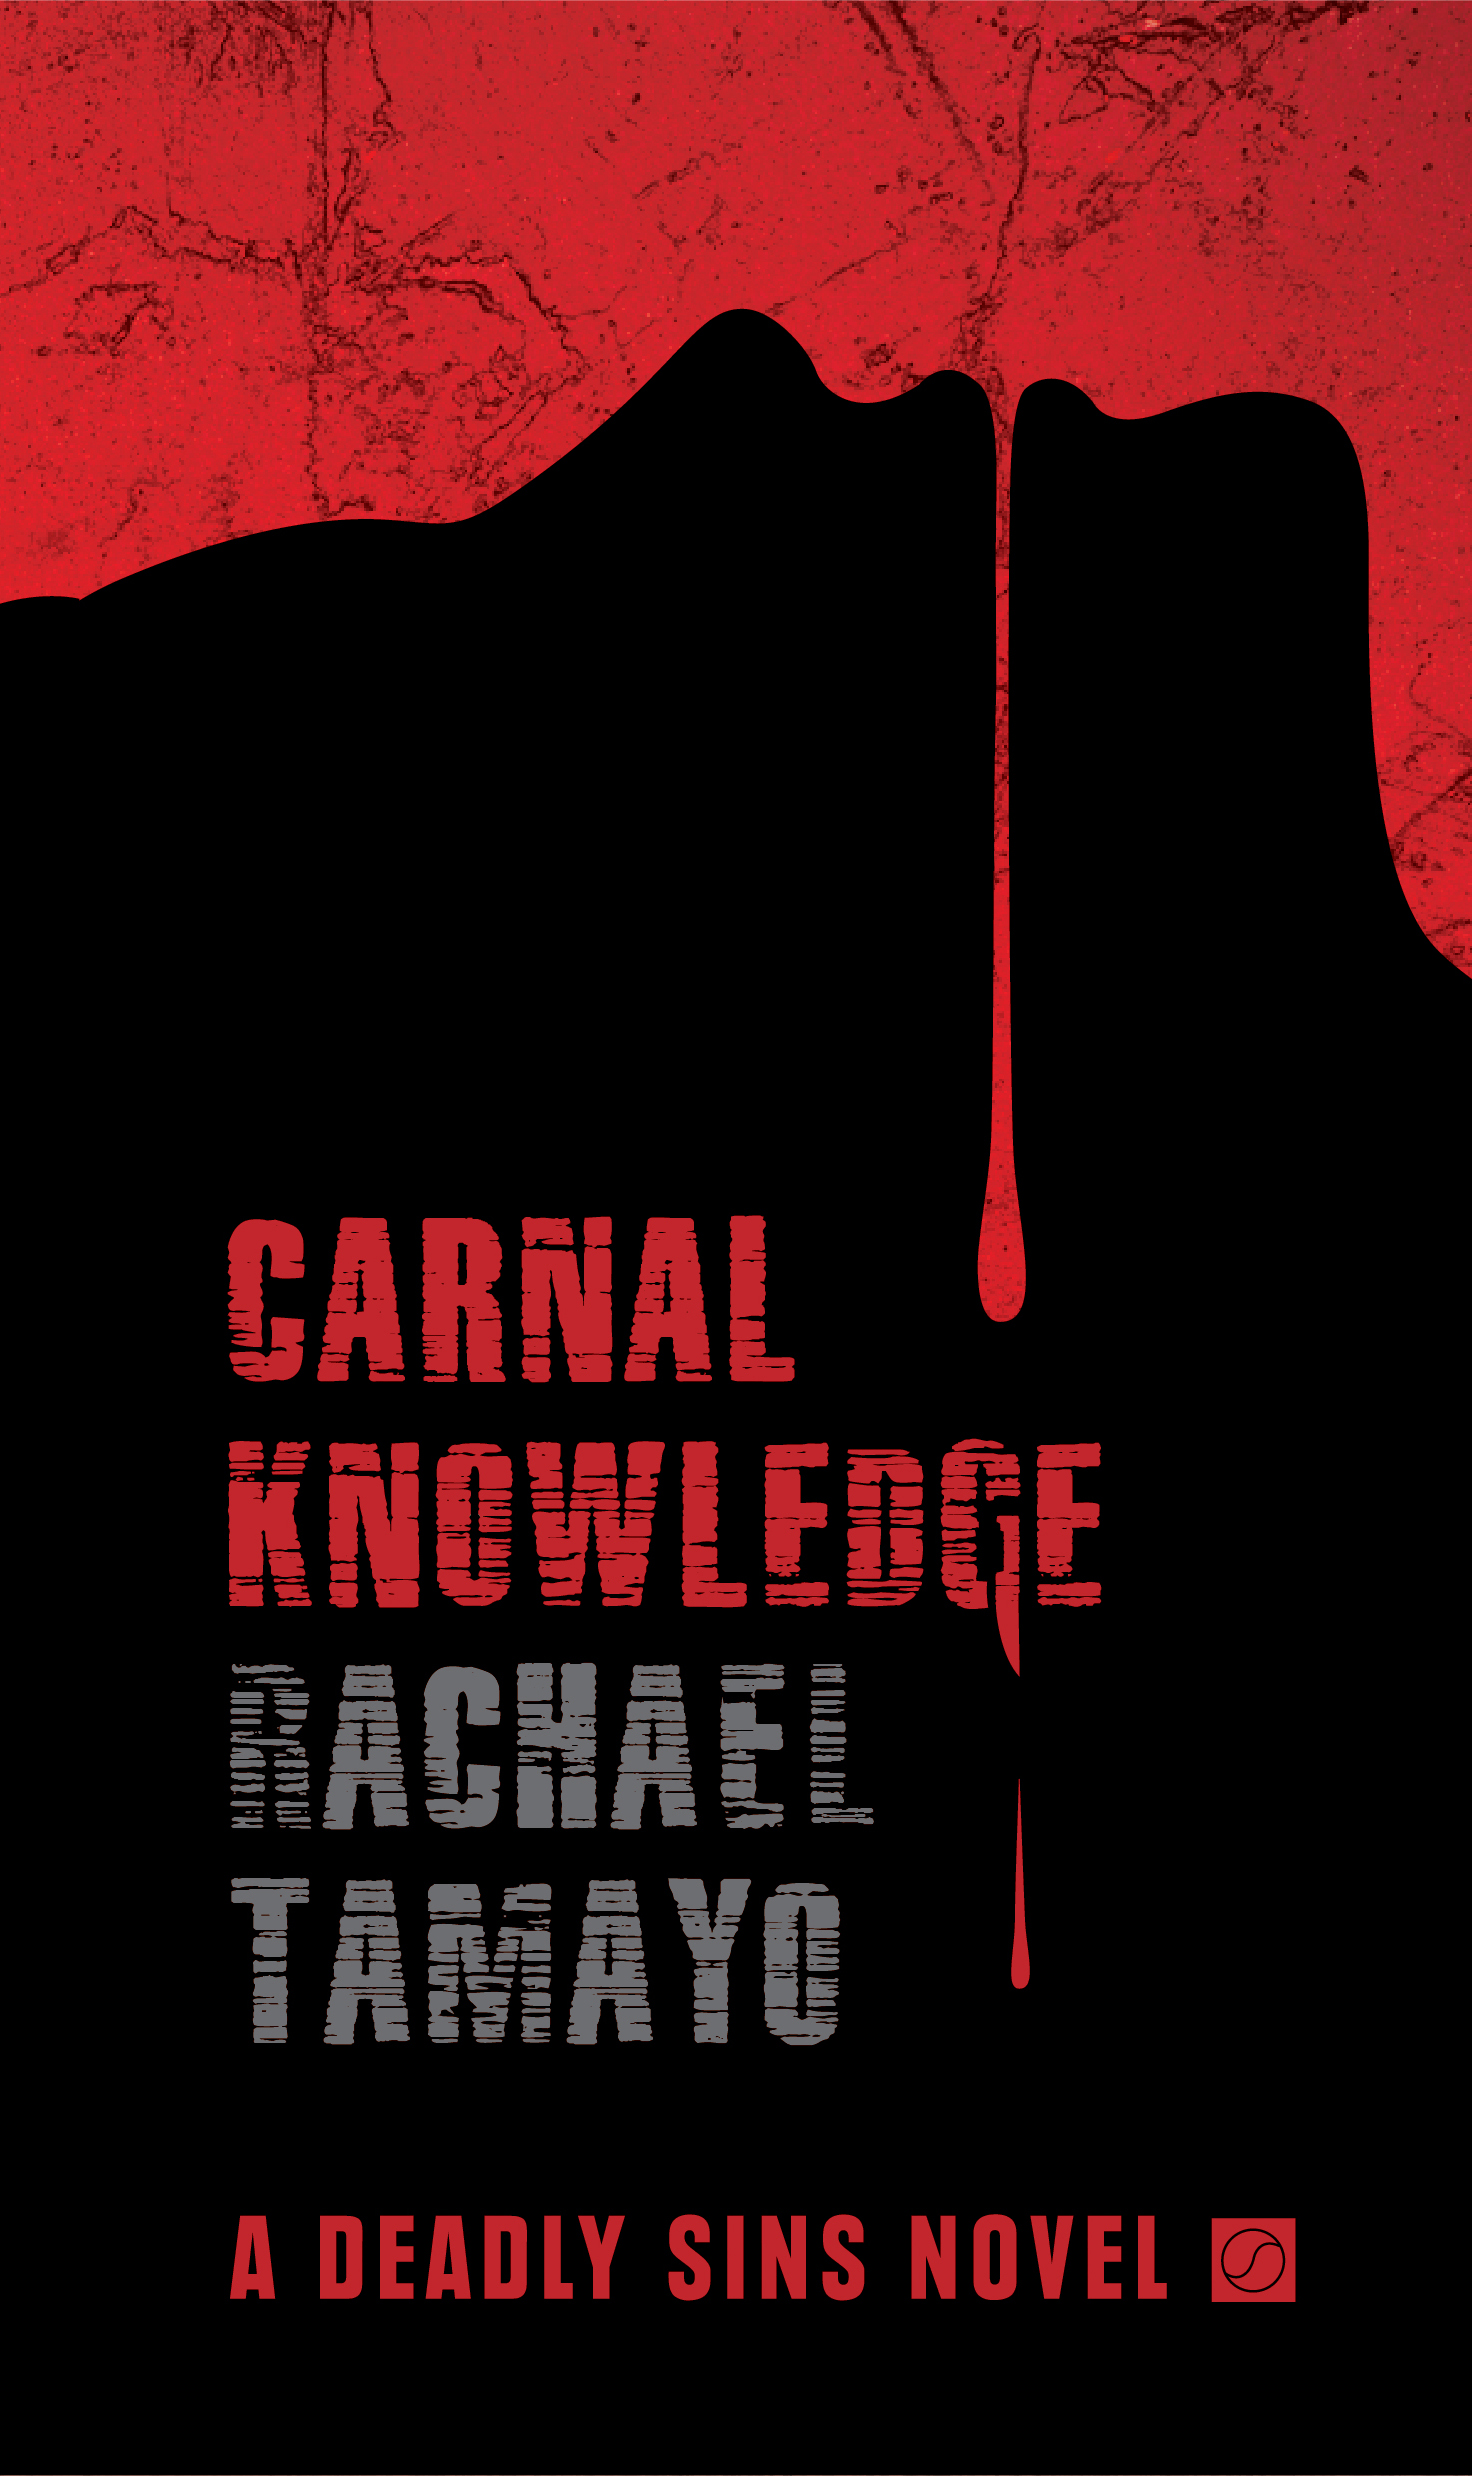 Carnal Knowledge by Rachael Tamayo